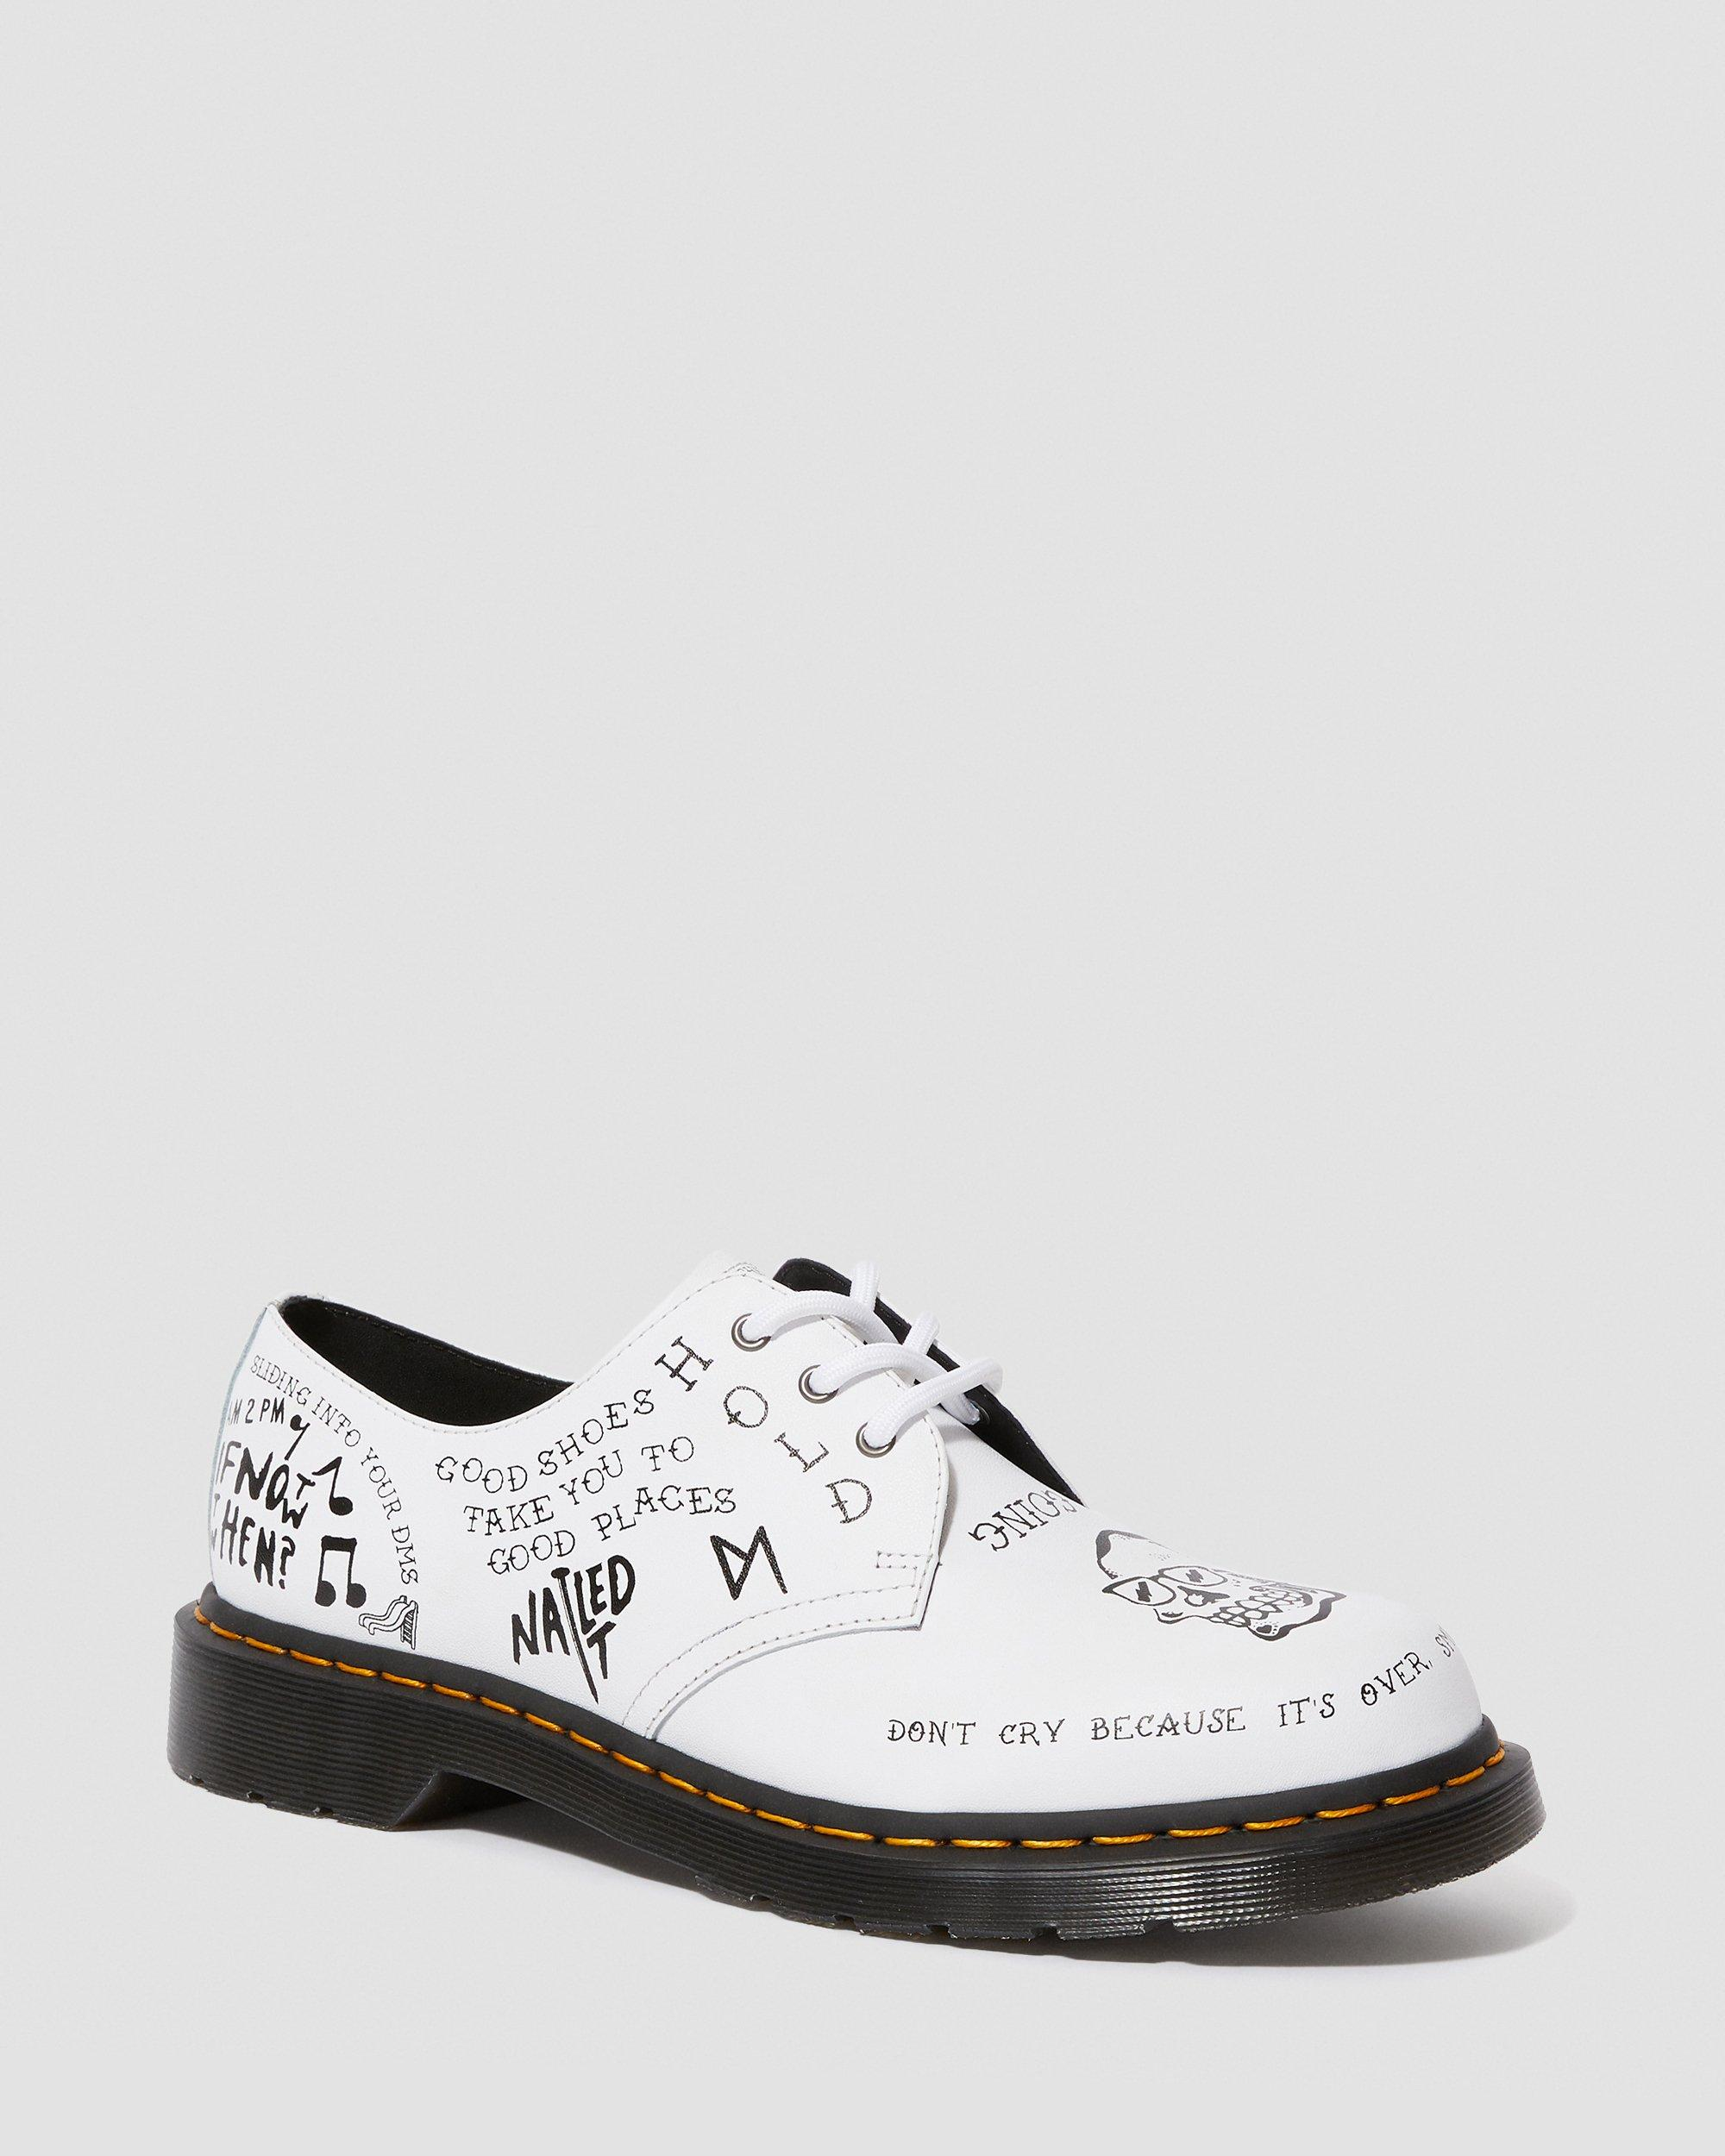 Scarpe Uomo Dr. Martens ADRIAN YELLOW STITCH Outlet